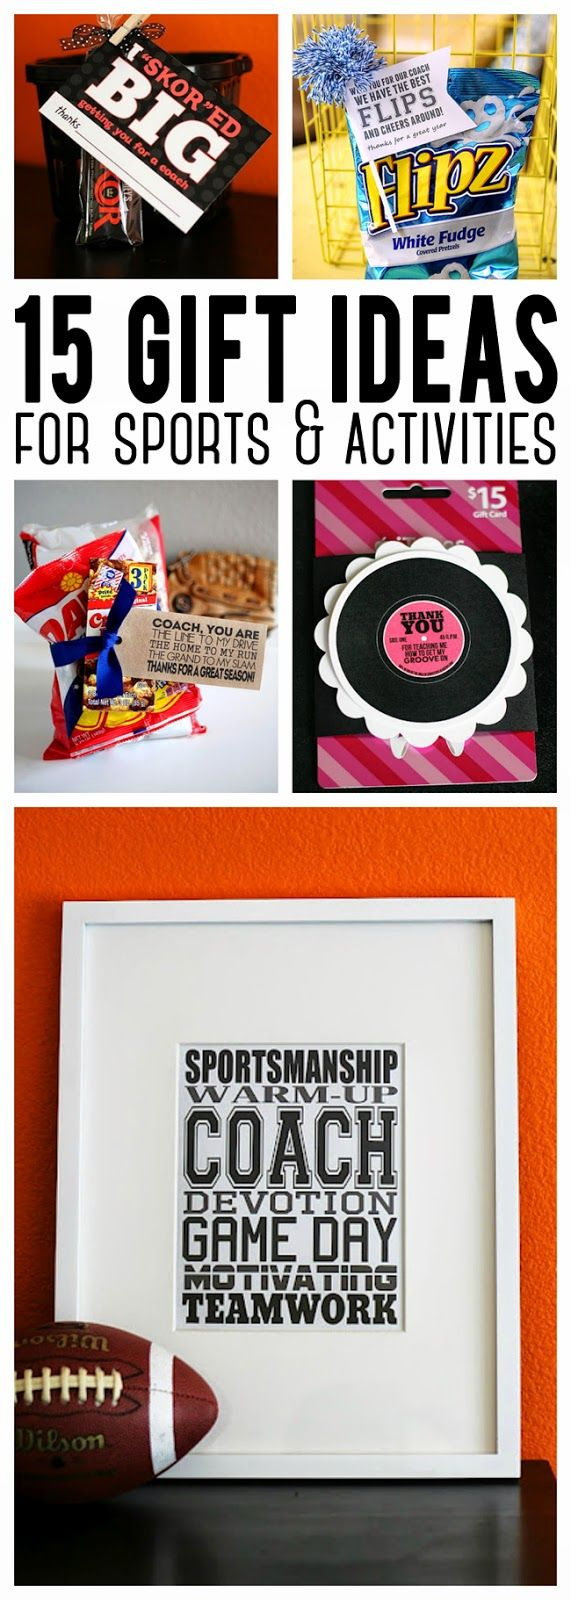 15 Fun Gift Ideas For Sports & Activities   Coach Gifts, teammate gifts, gifts f...